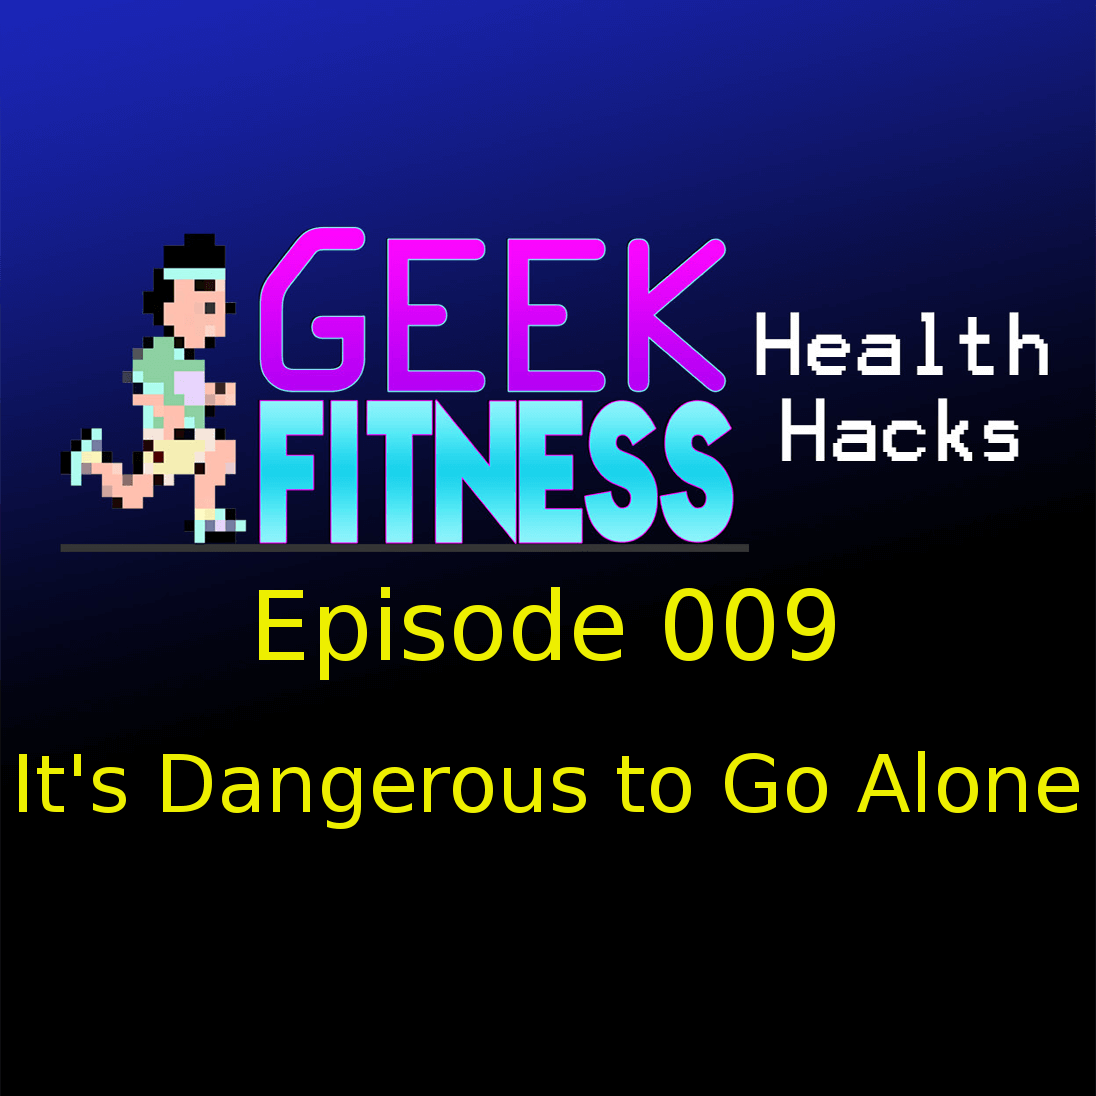 """It's Dangerous to Go Alone"" + Ermagerd Linux Ubuntu! (Geek Fitness Health Hacks, Episode 009)"